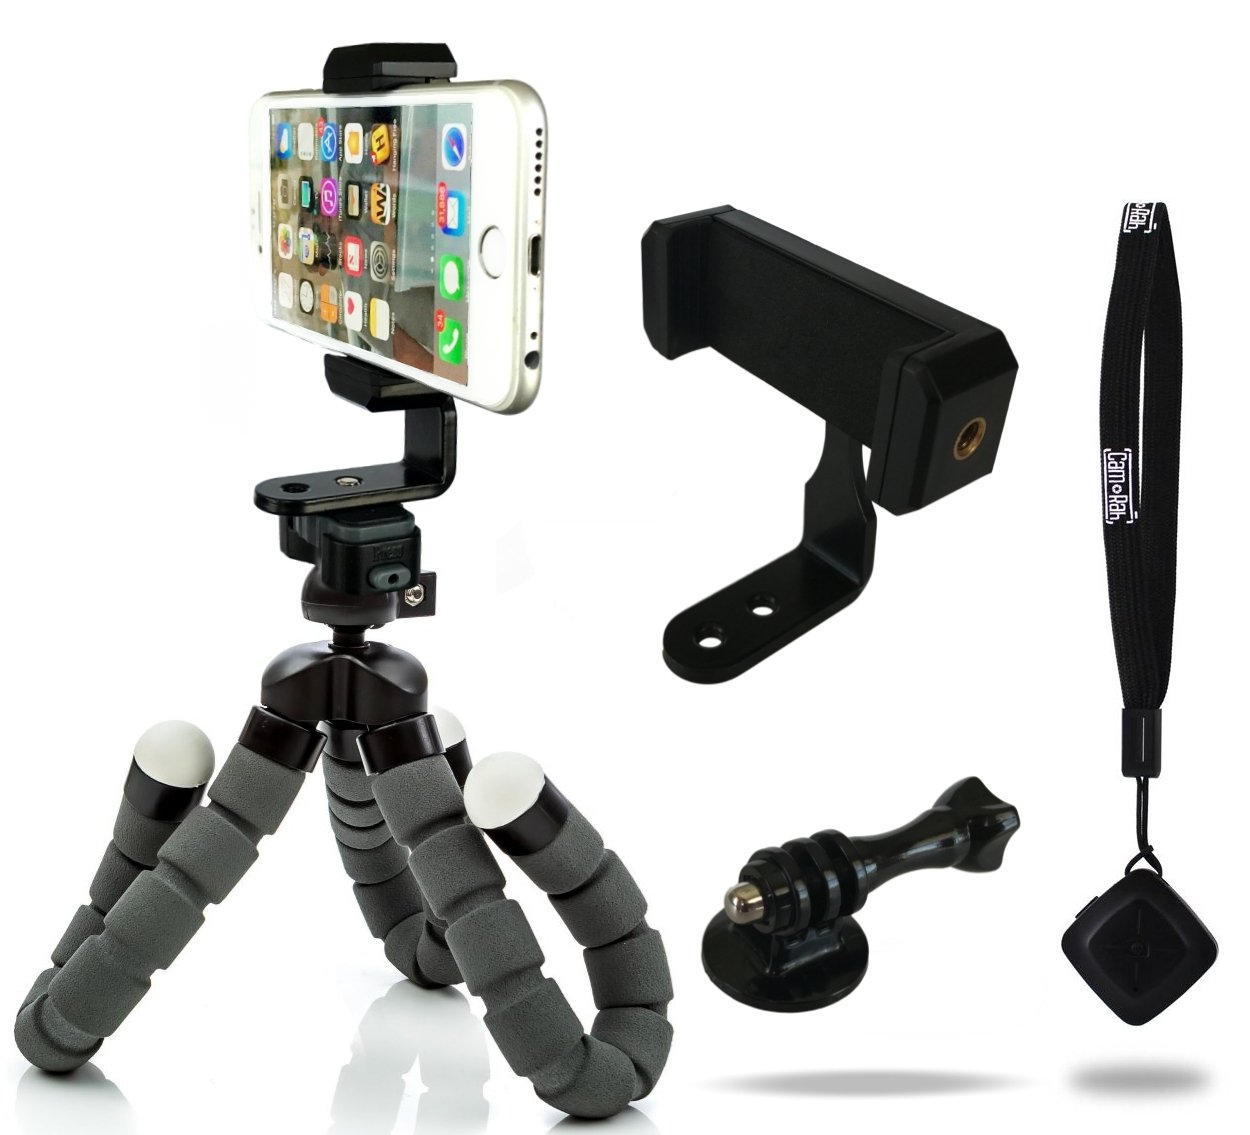 CamRah iPhone Tripod Flexible Pro Series Bluetooth Shutter Remote Portrait Landscape Mount